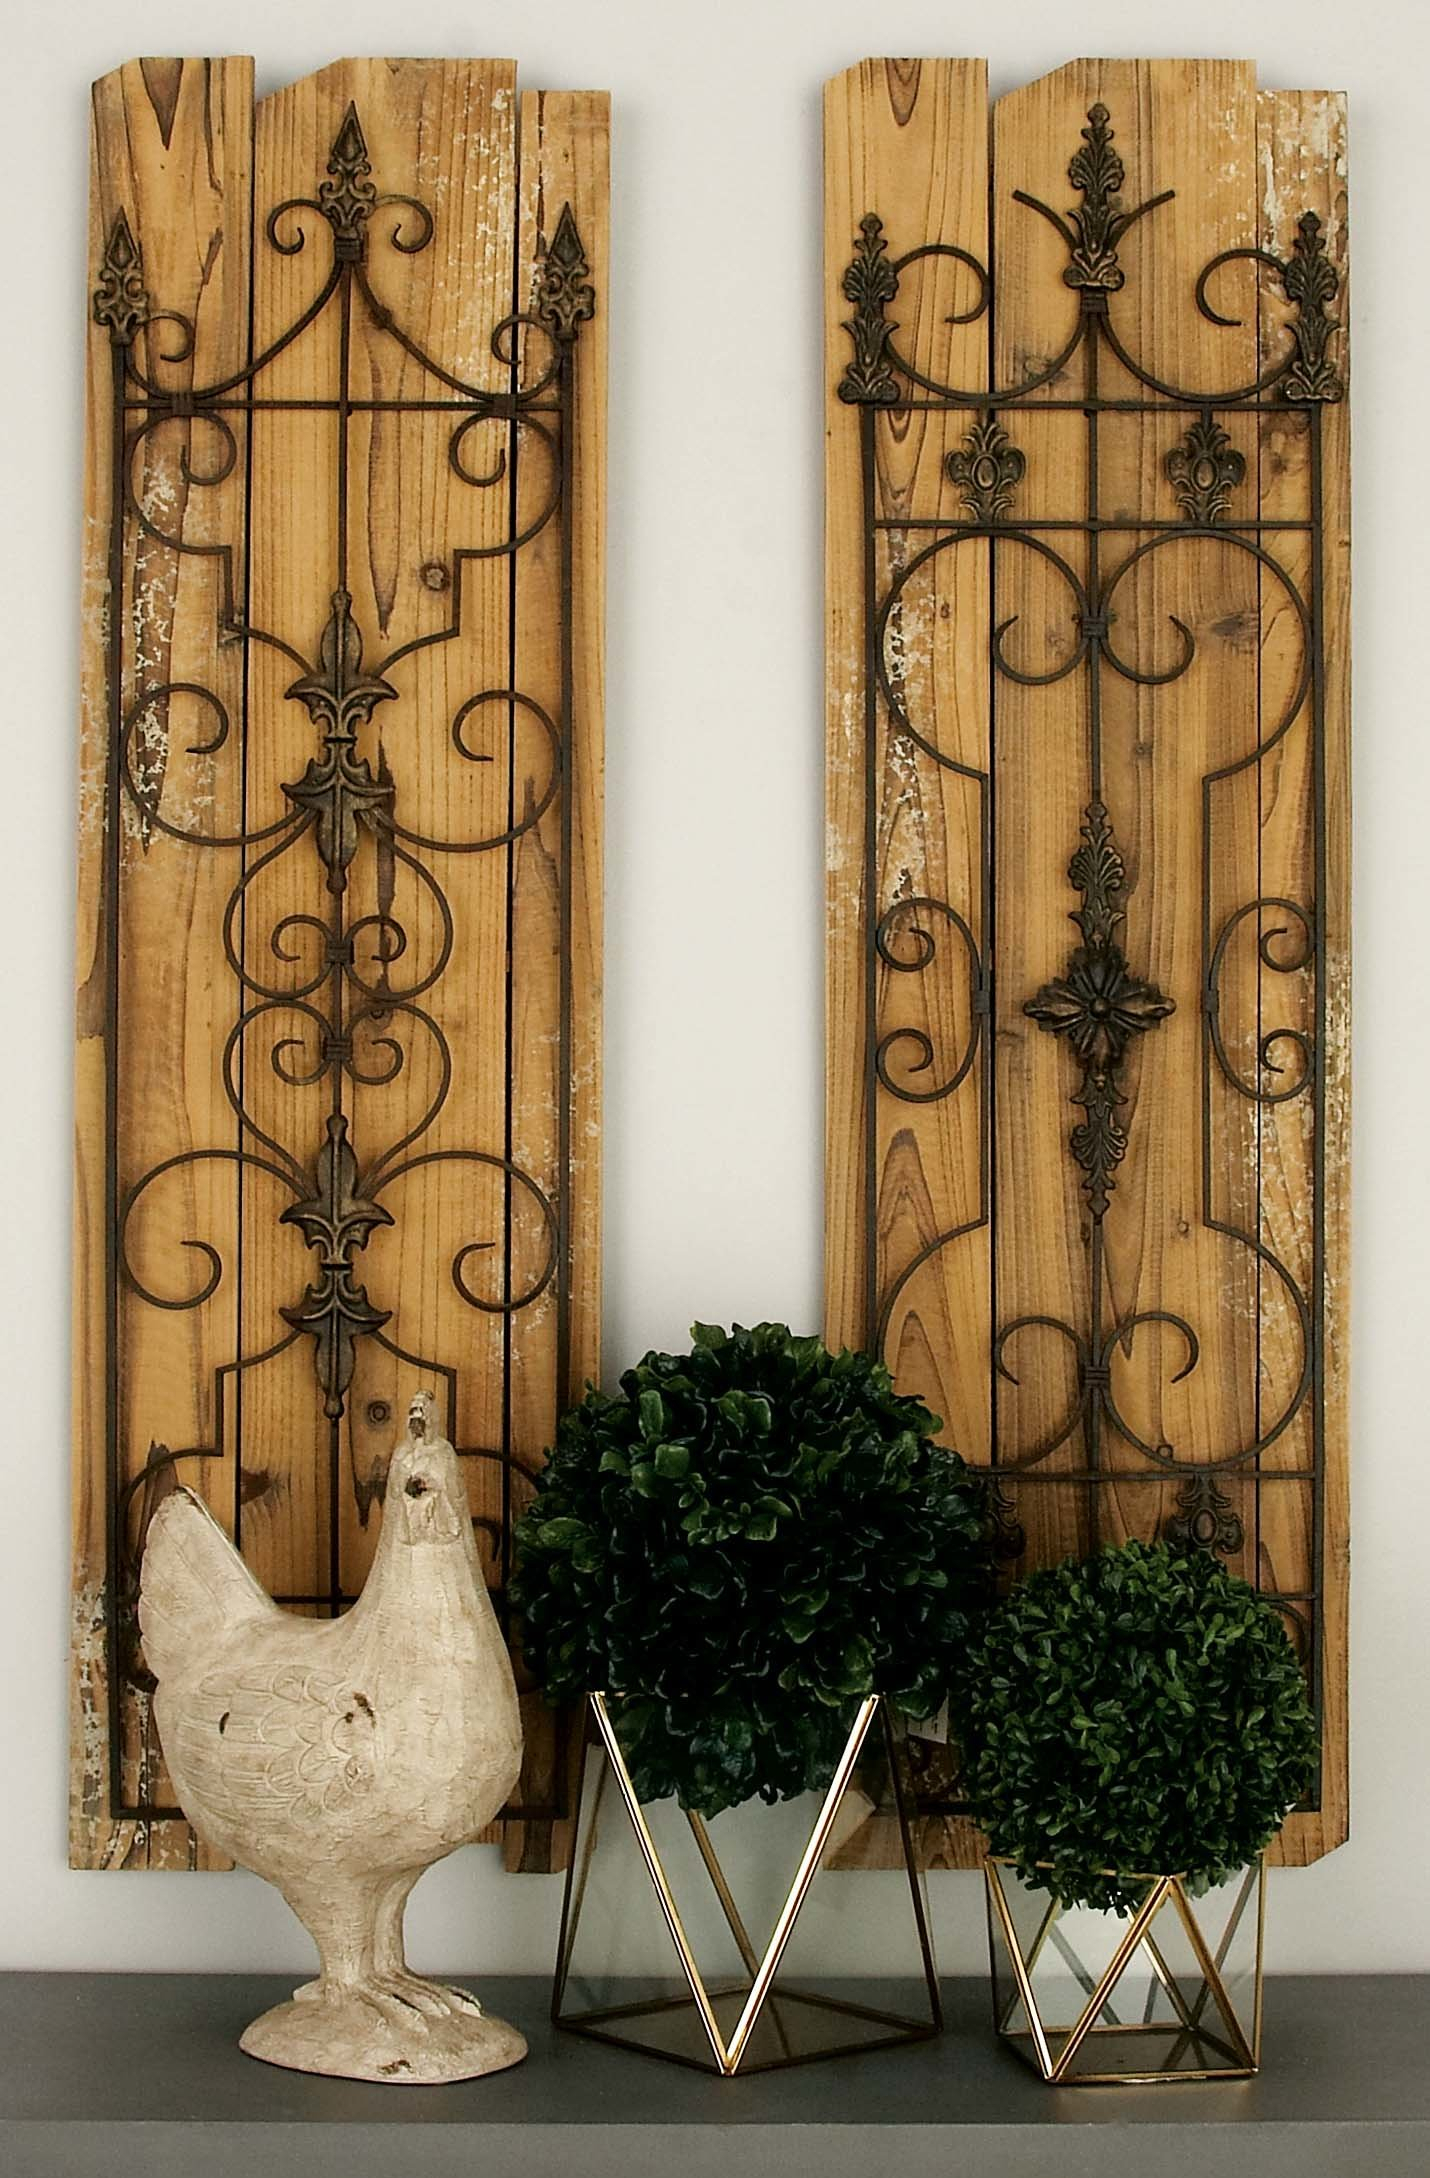 Mirror Wall Decor Set | Wayfair Intended For 2 Piece Panel Wood Wall Decor Sets (set Of 2) (View 19 of 30)